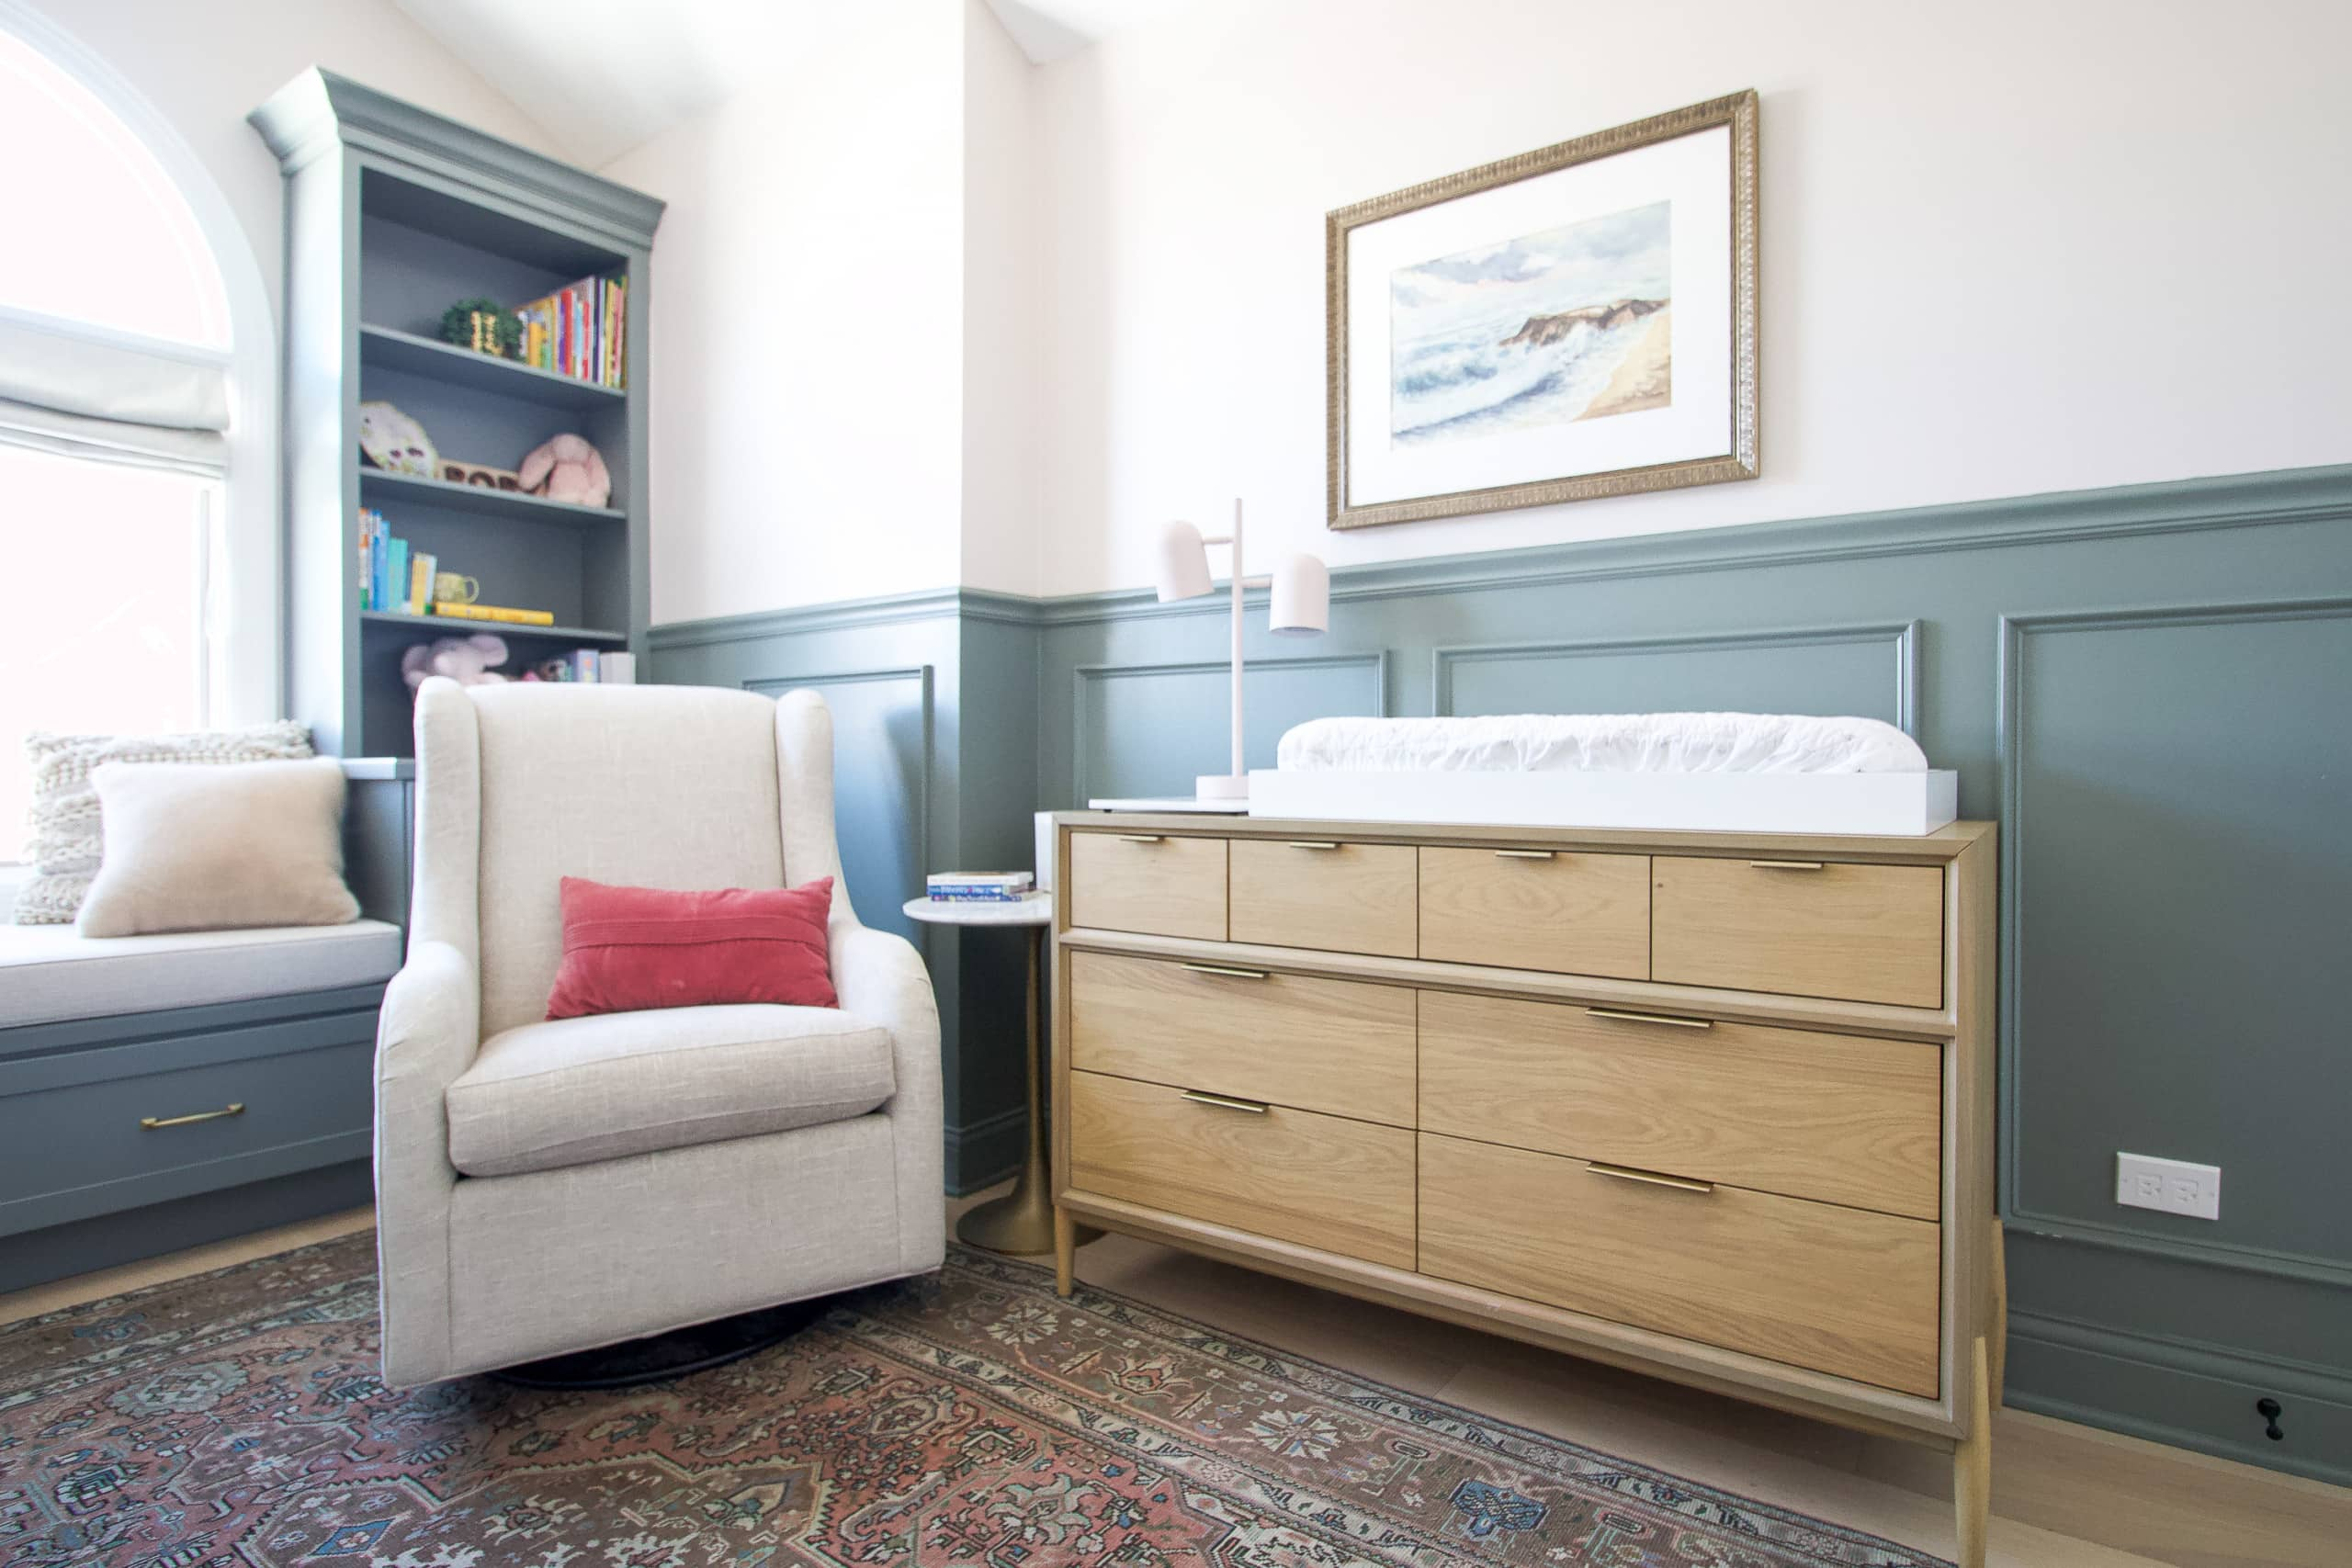 Tips to anchor heavy furniture to the walls